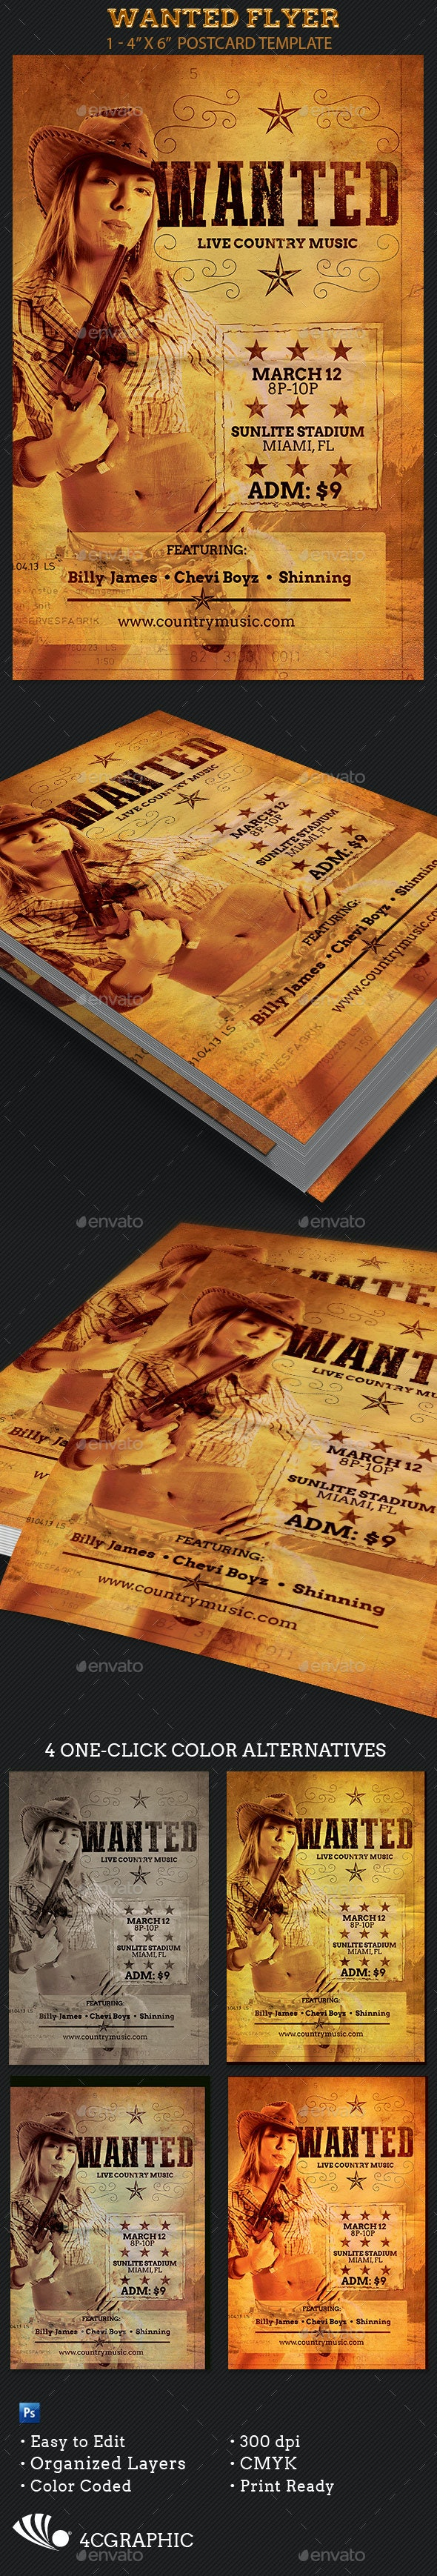 Wanted Flyer Template - Events Flyers